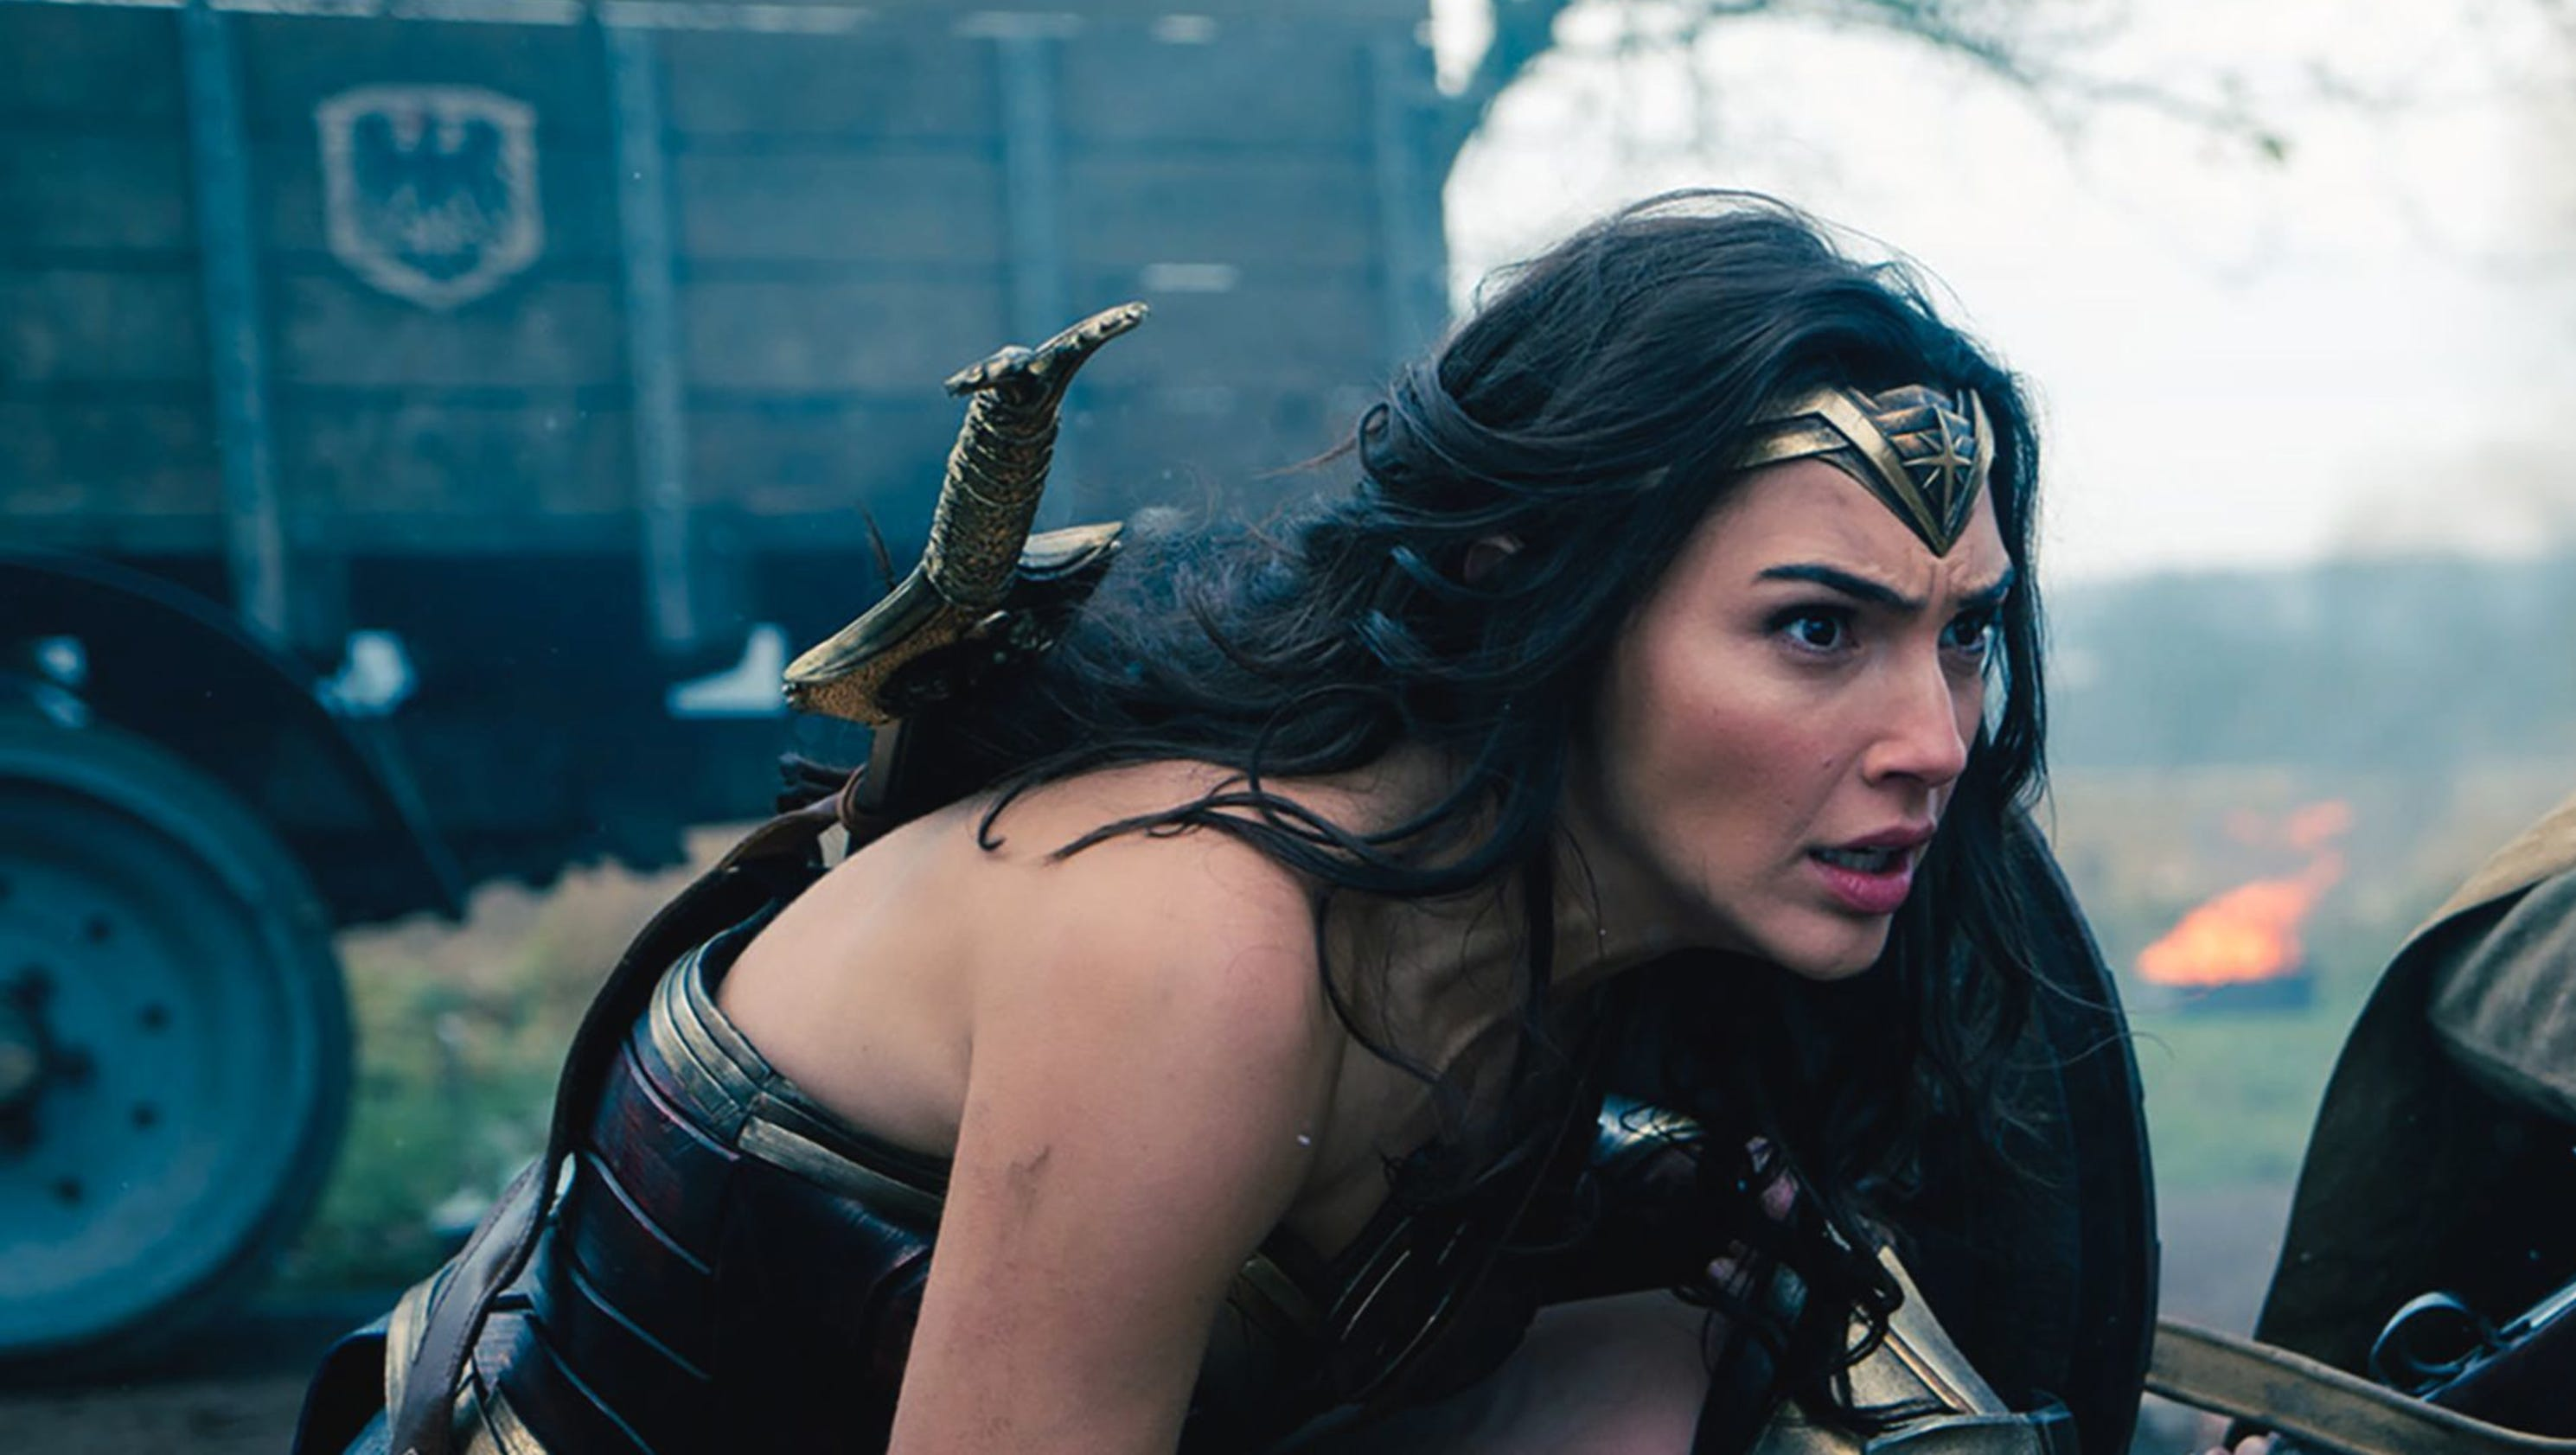 May 07, · Witness the rise of a Warrior. Watch the NEW #WonderWoman trailer now! -- WONDER WOMAN is in theaters June 2, From Warner Bros. Pictures and DC Entertainment comes the epic action adventure.